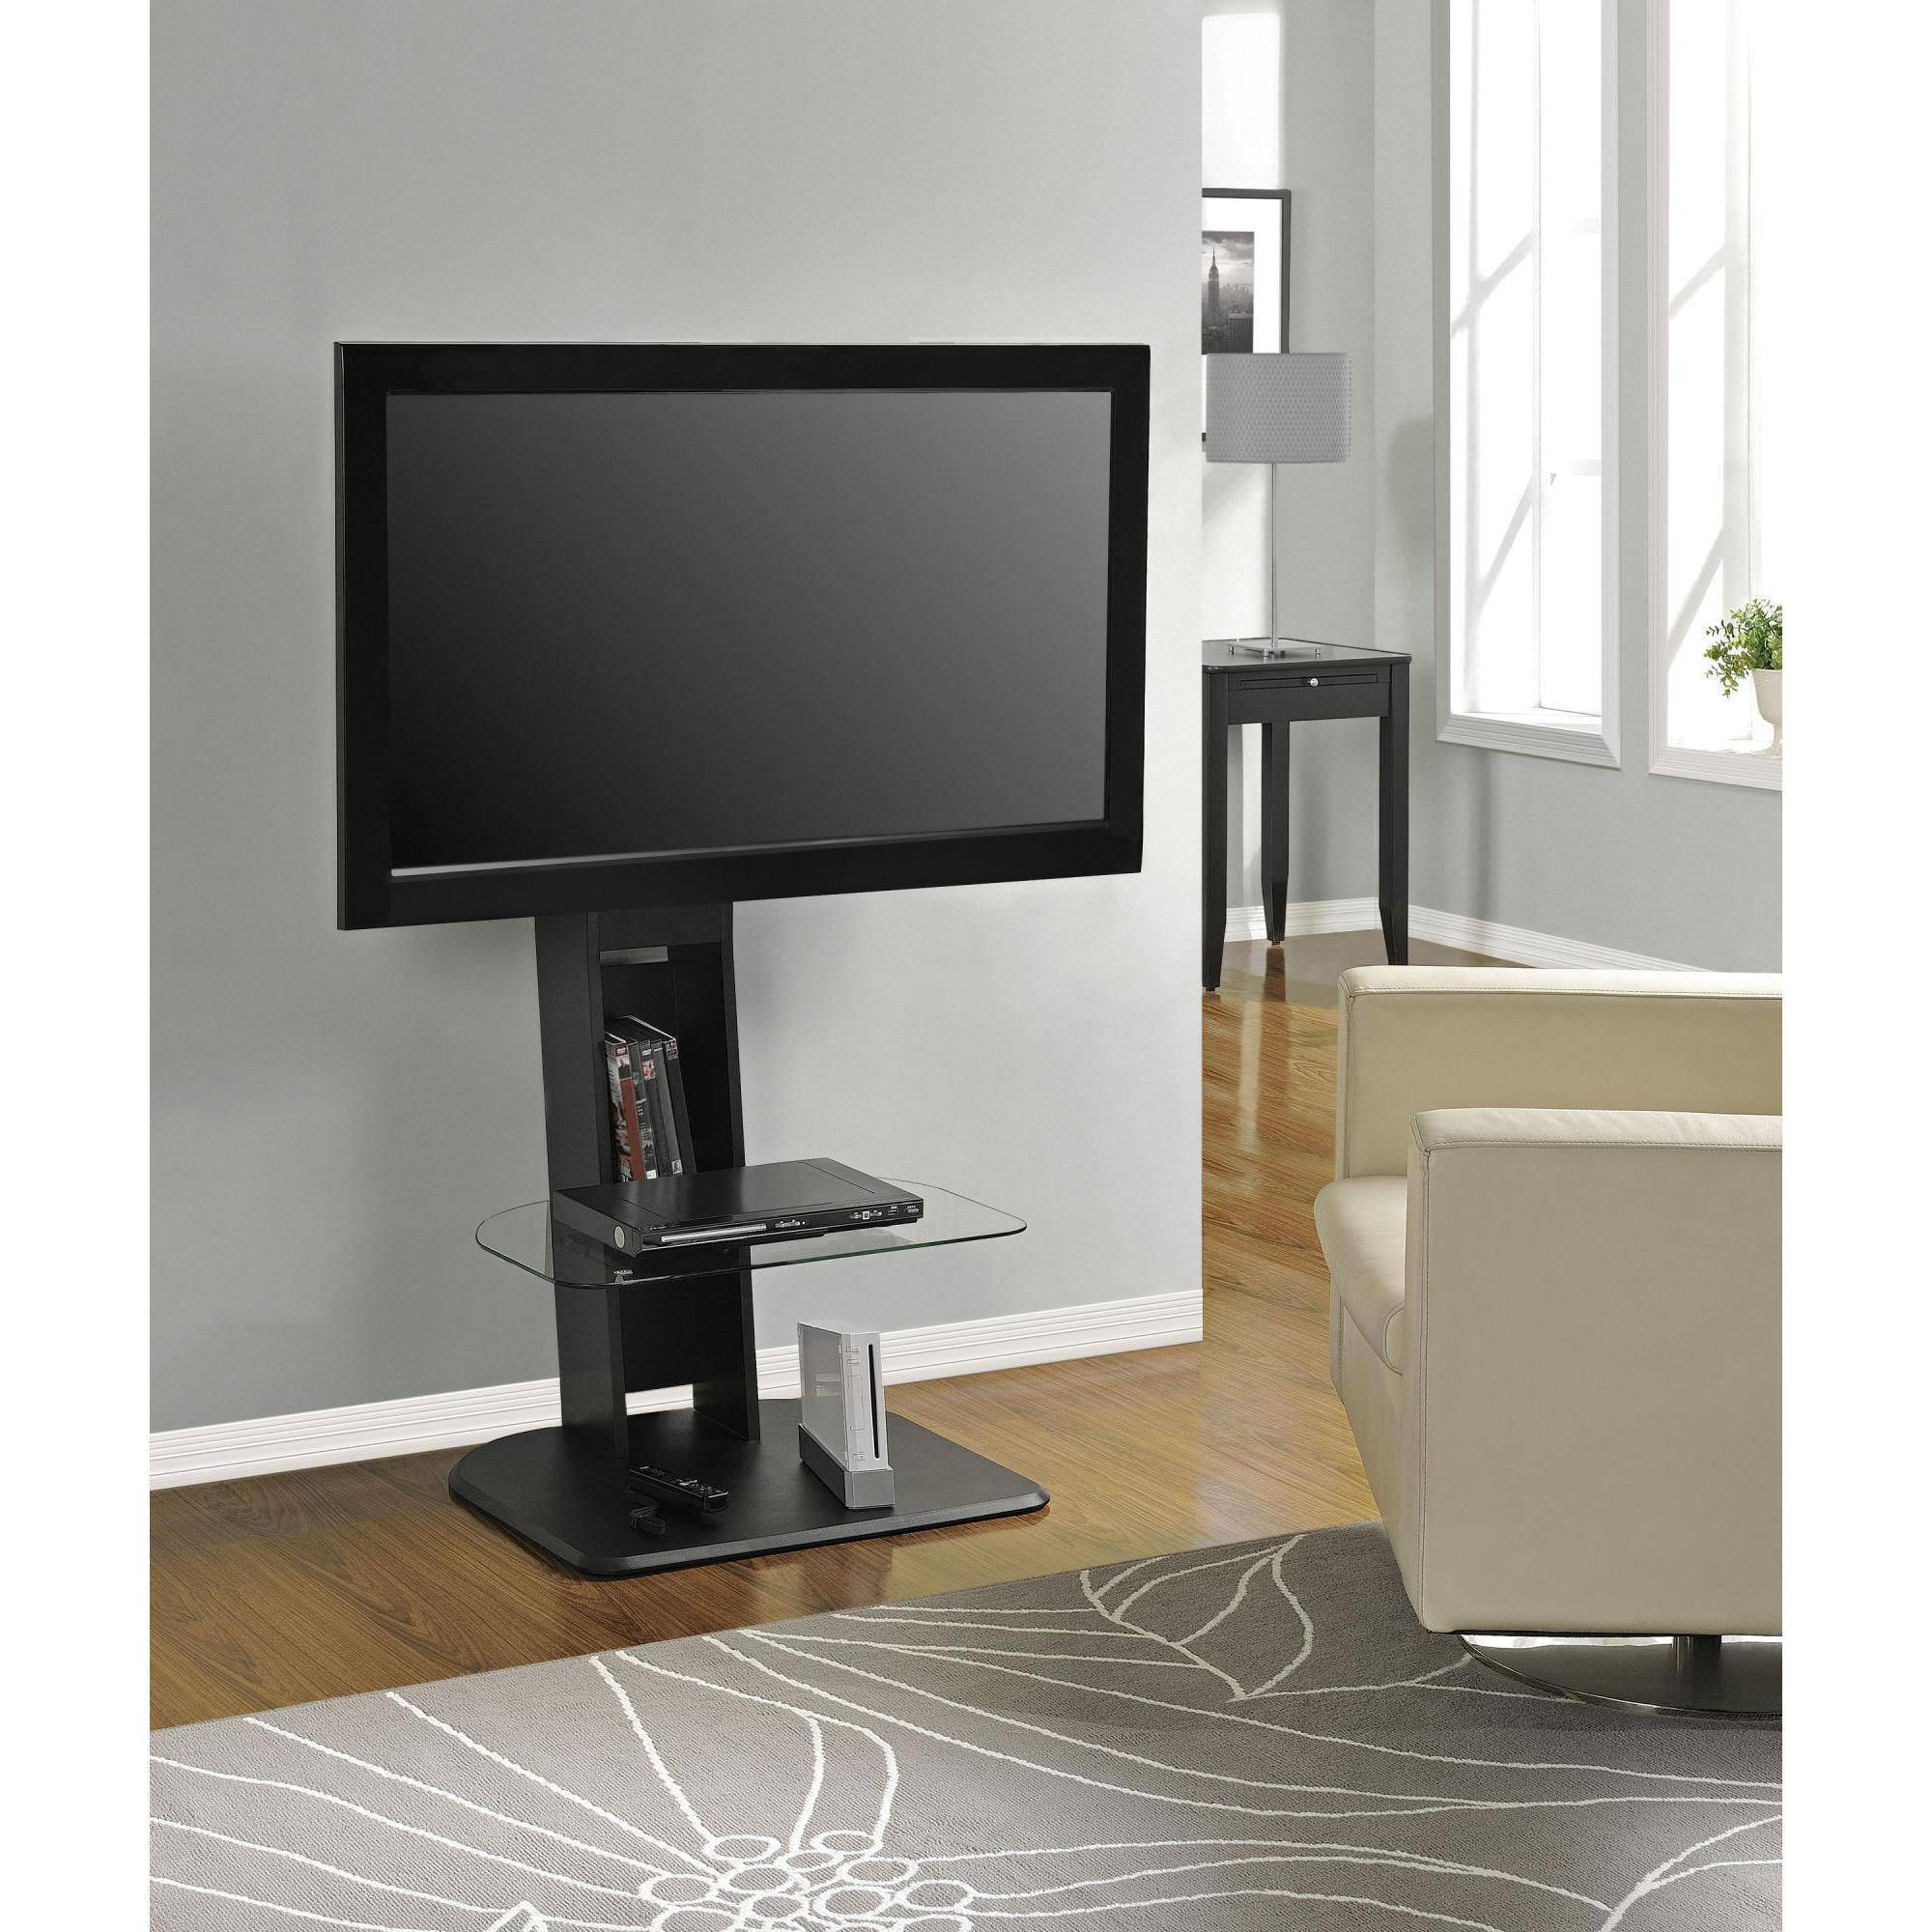 """Techni Mobili Durbin Tv Cabinet For Tvs Up To 65"""", Espresso For Wooden Tv Stands For 55 Inch Flat Screen (View 11 of 15)"""